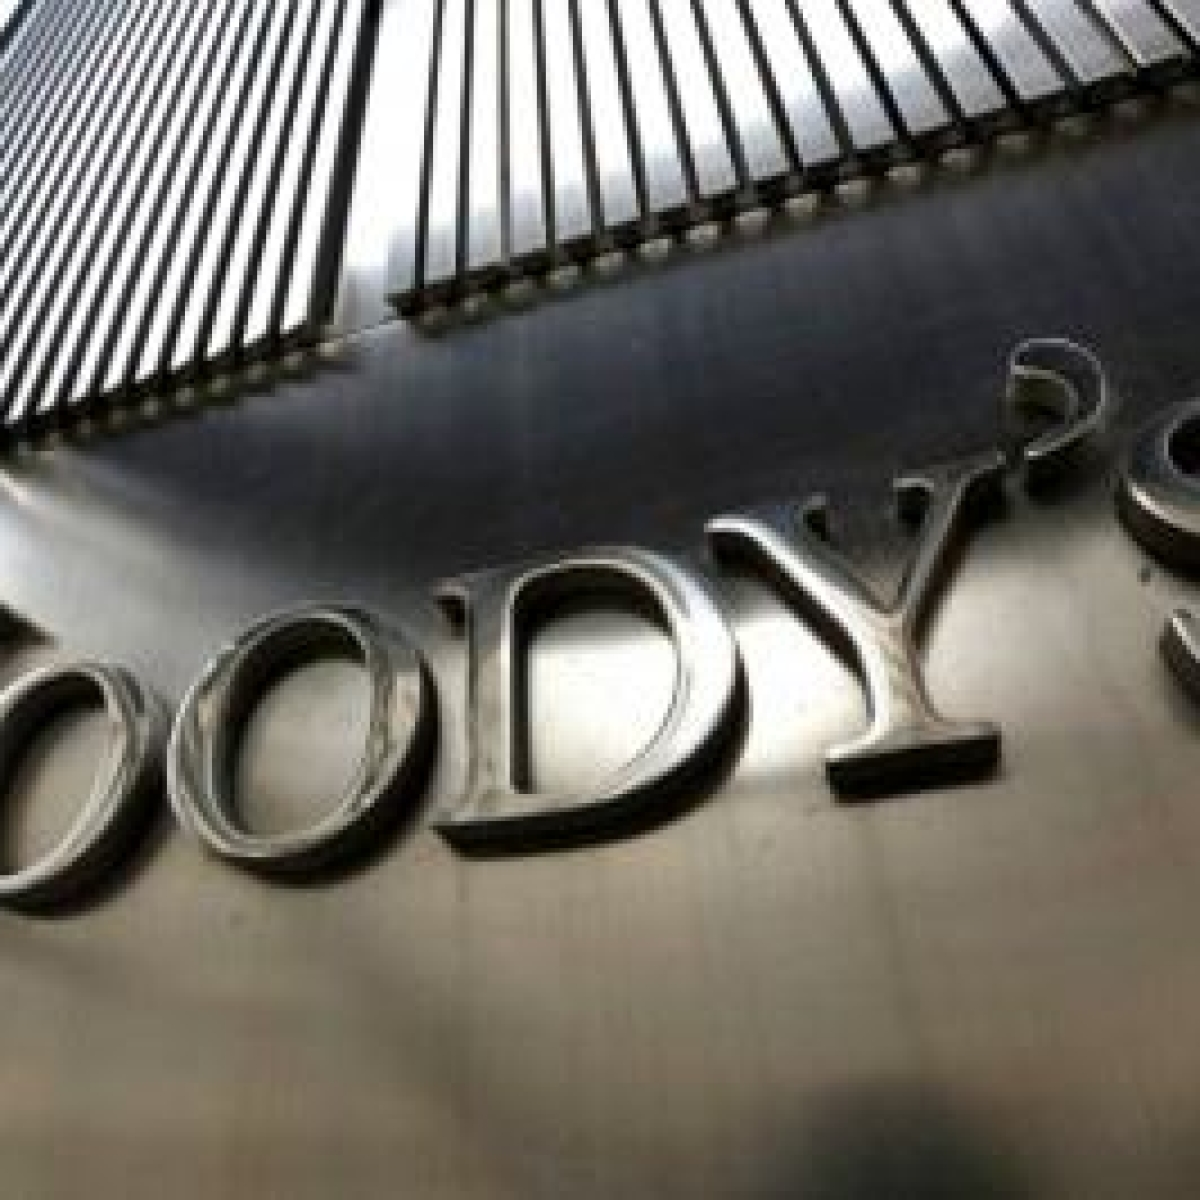 Corporate tax cut positive but growth faces headwinds: Moody's Investors Service